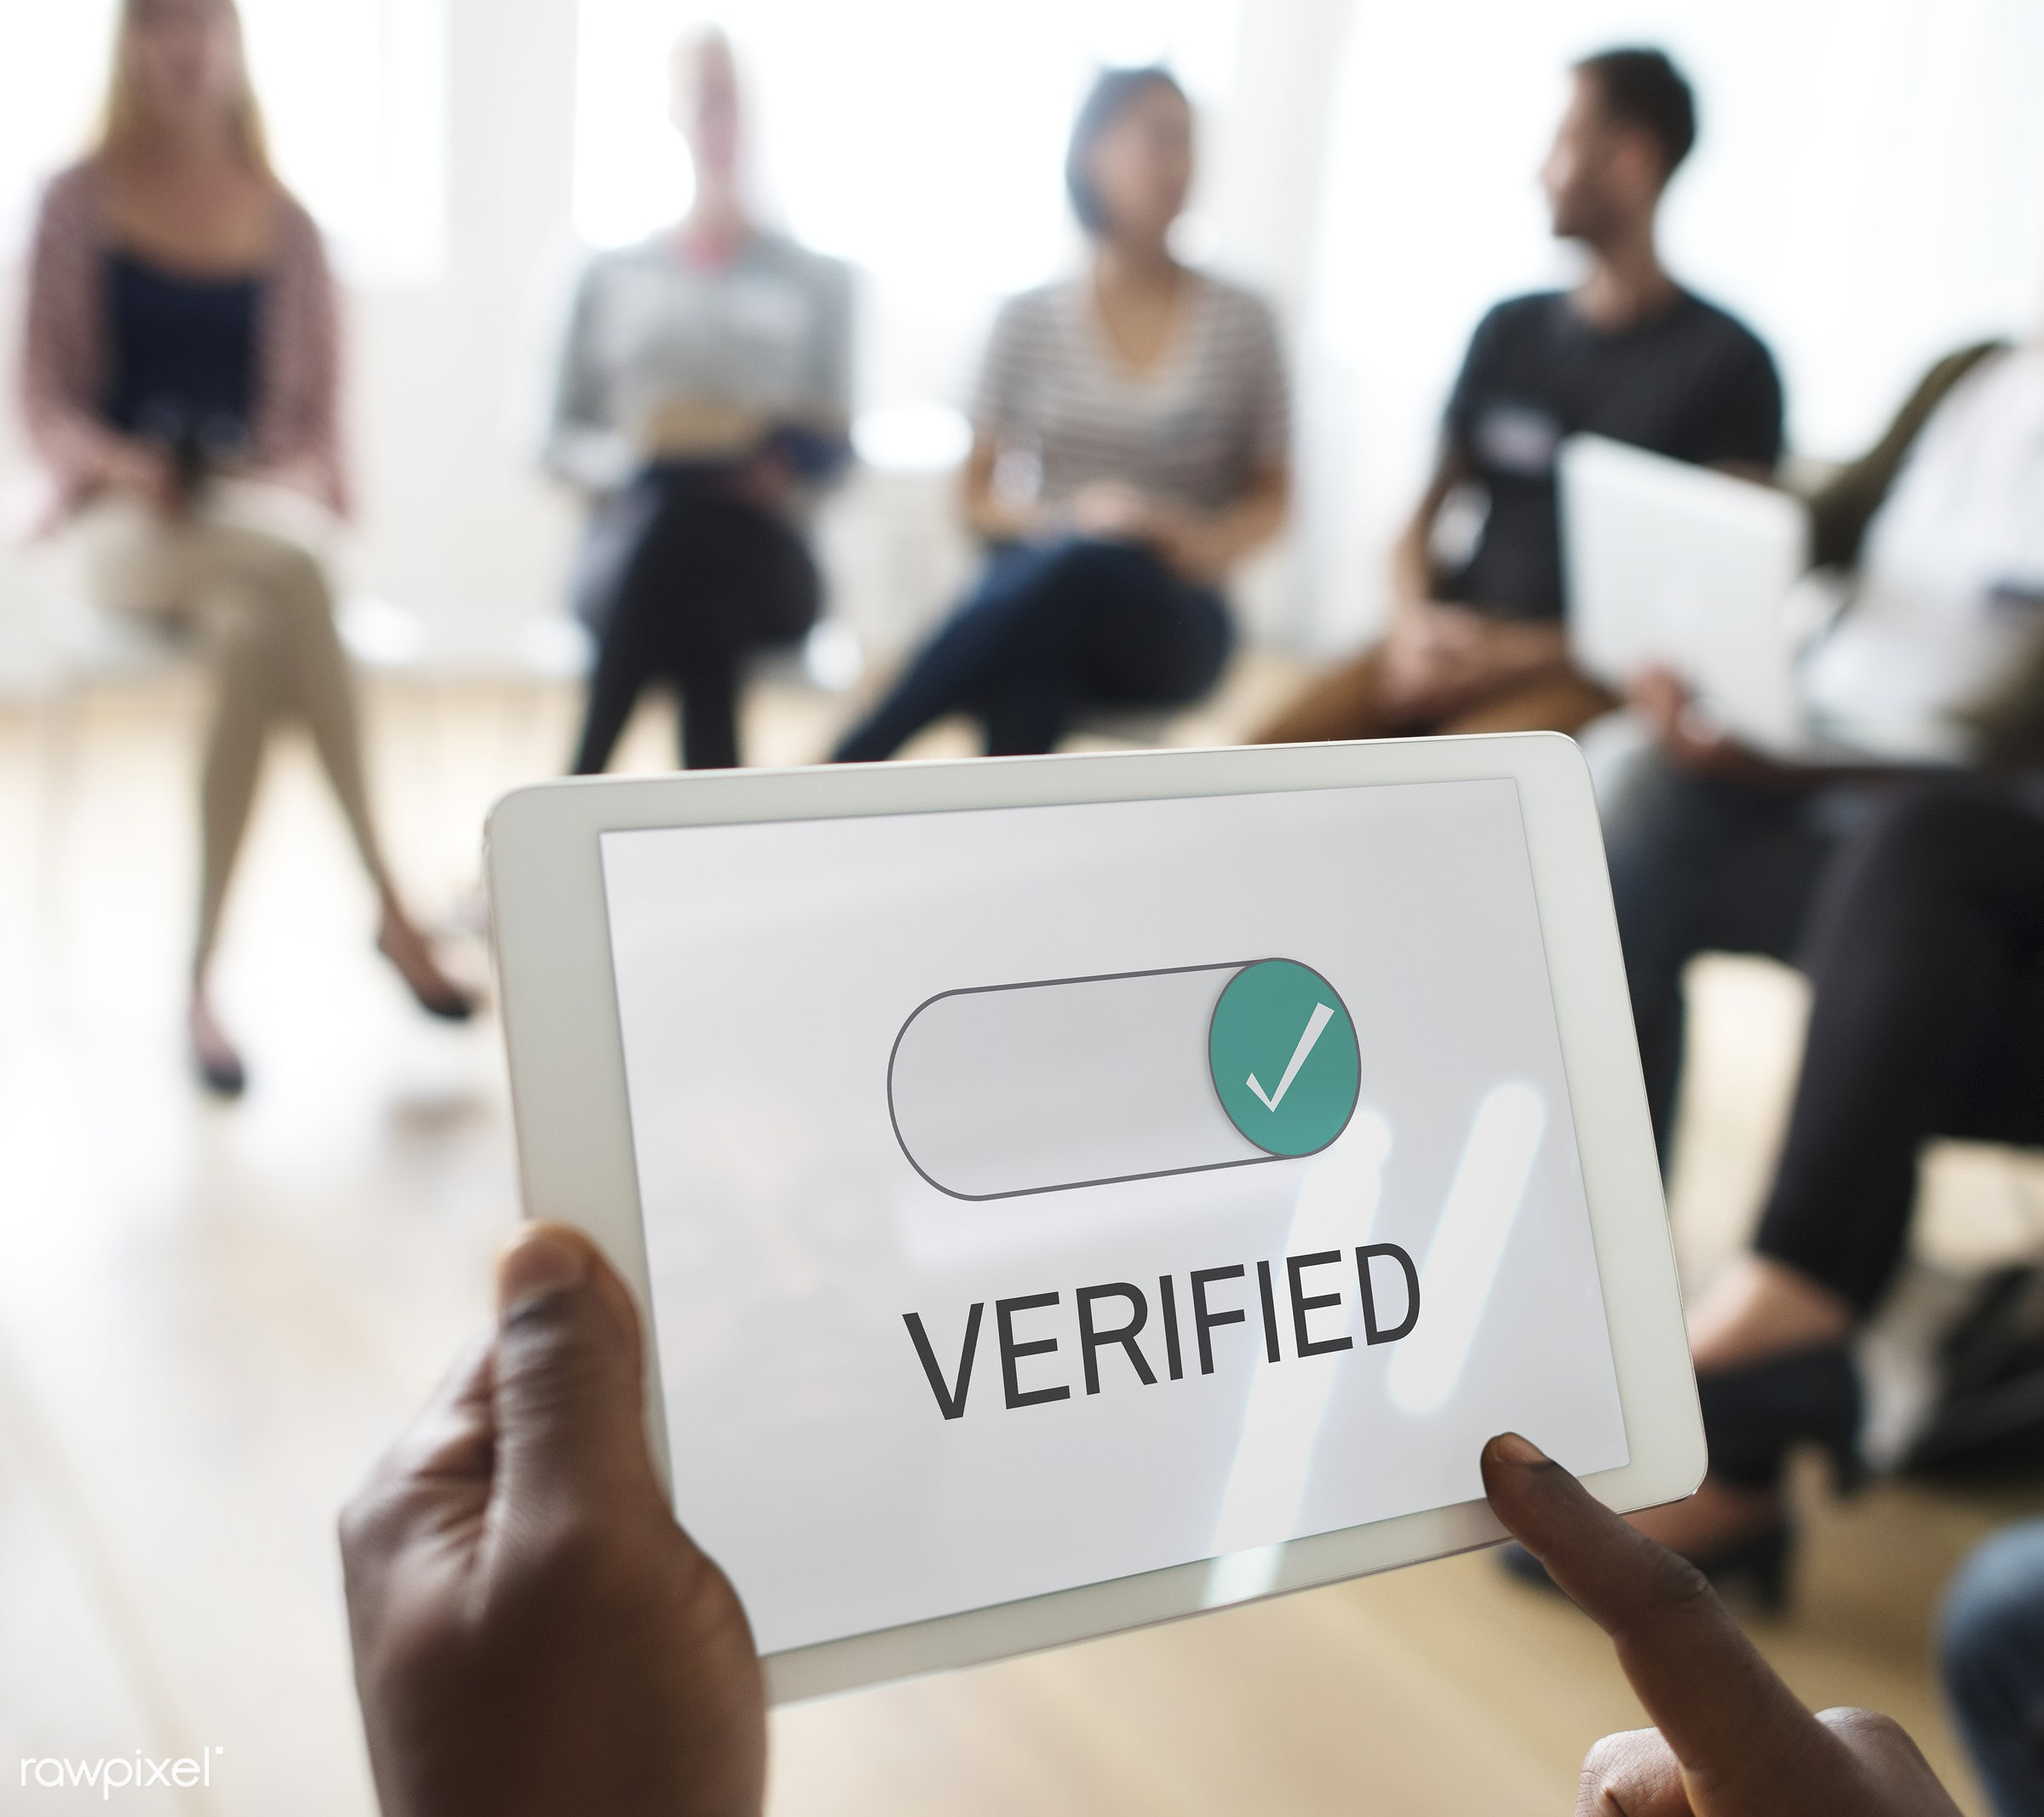 Man holding tablet with verified in seminar - allow, allowance, approval, approve, authority, authorization, authorize,...